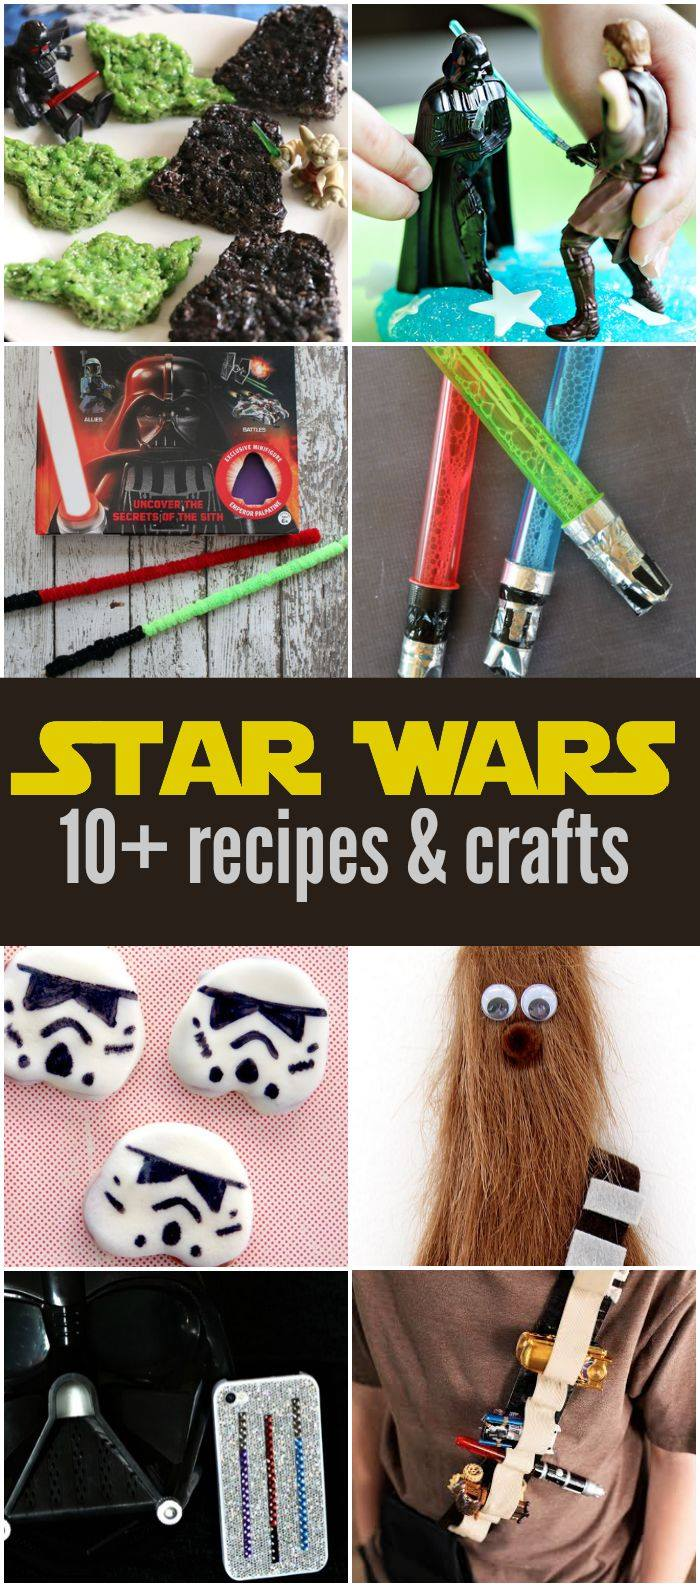 10+ Star Wars Crafts and Recipes #ForceFriday